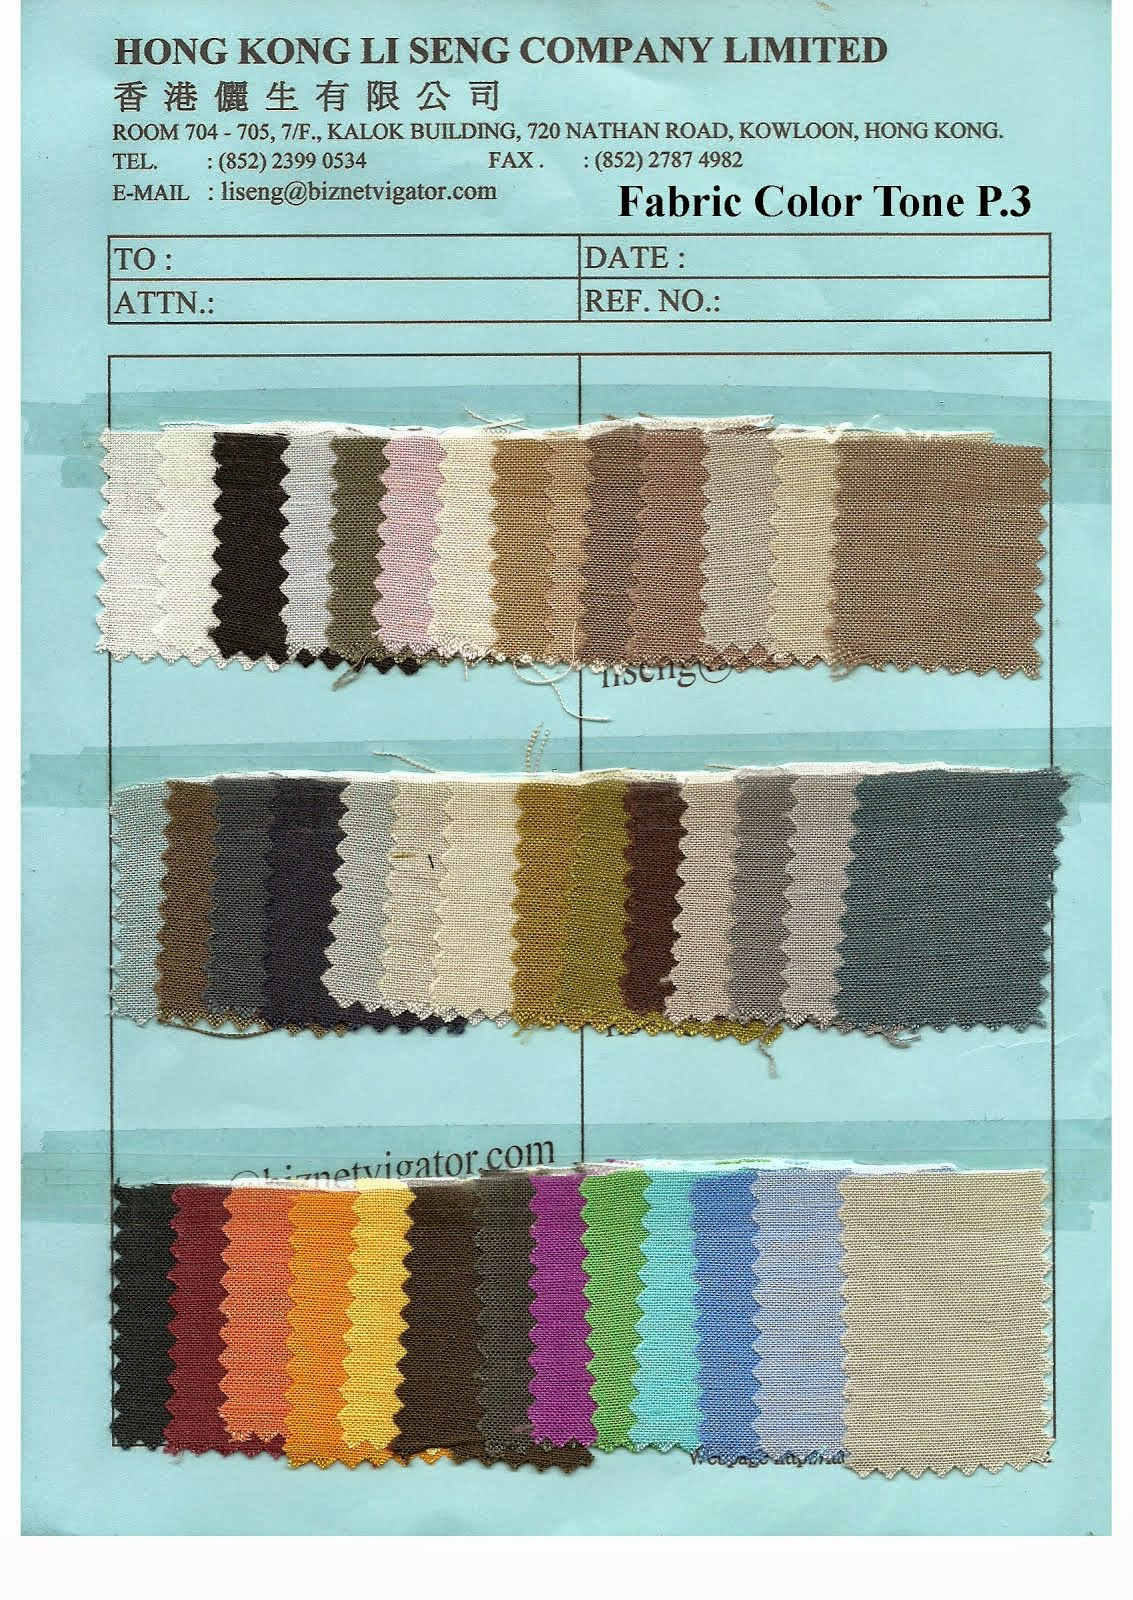 Fabric Color Tone P.3 - Hong Kong Li Seng Co Ltd